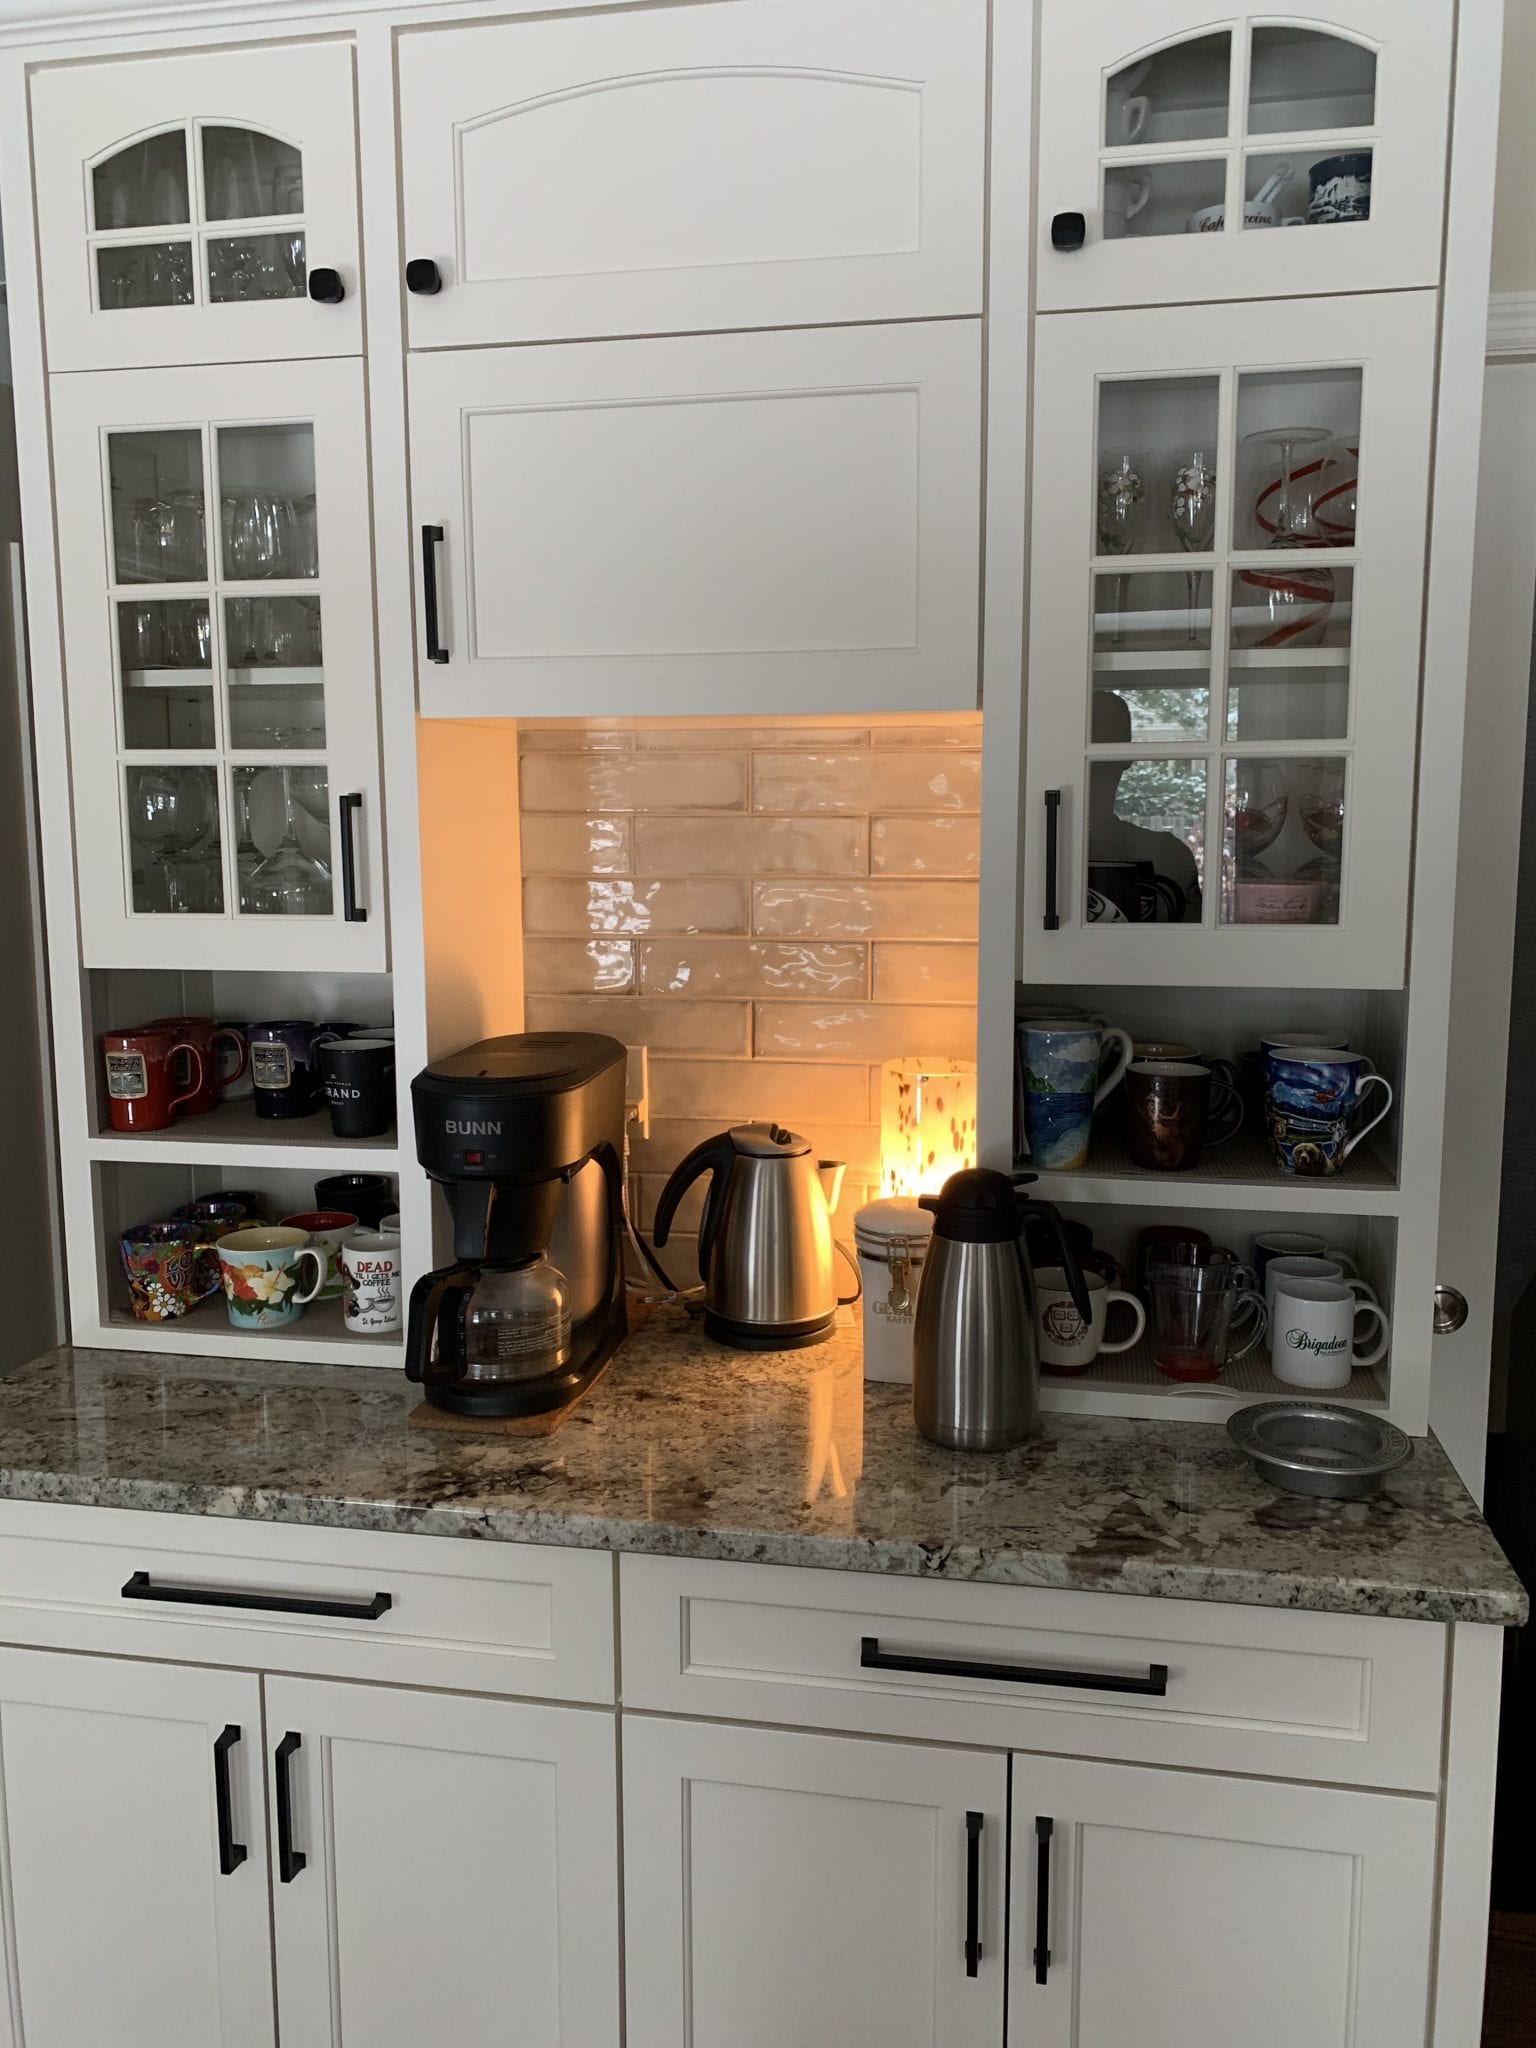 kitchen nook with coffee pot and decor on top